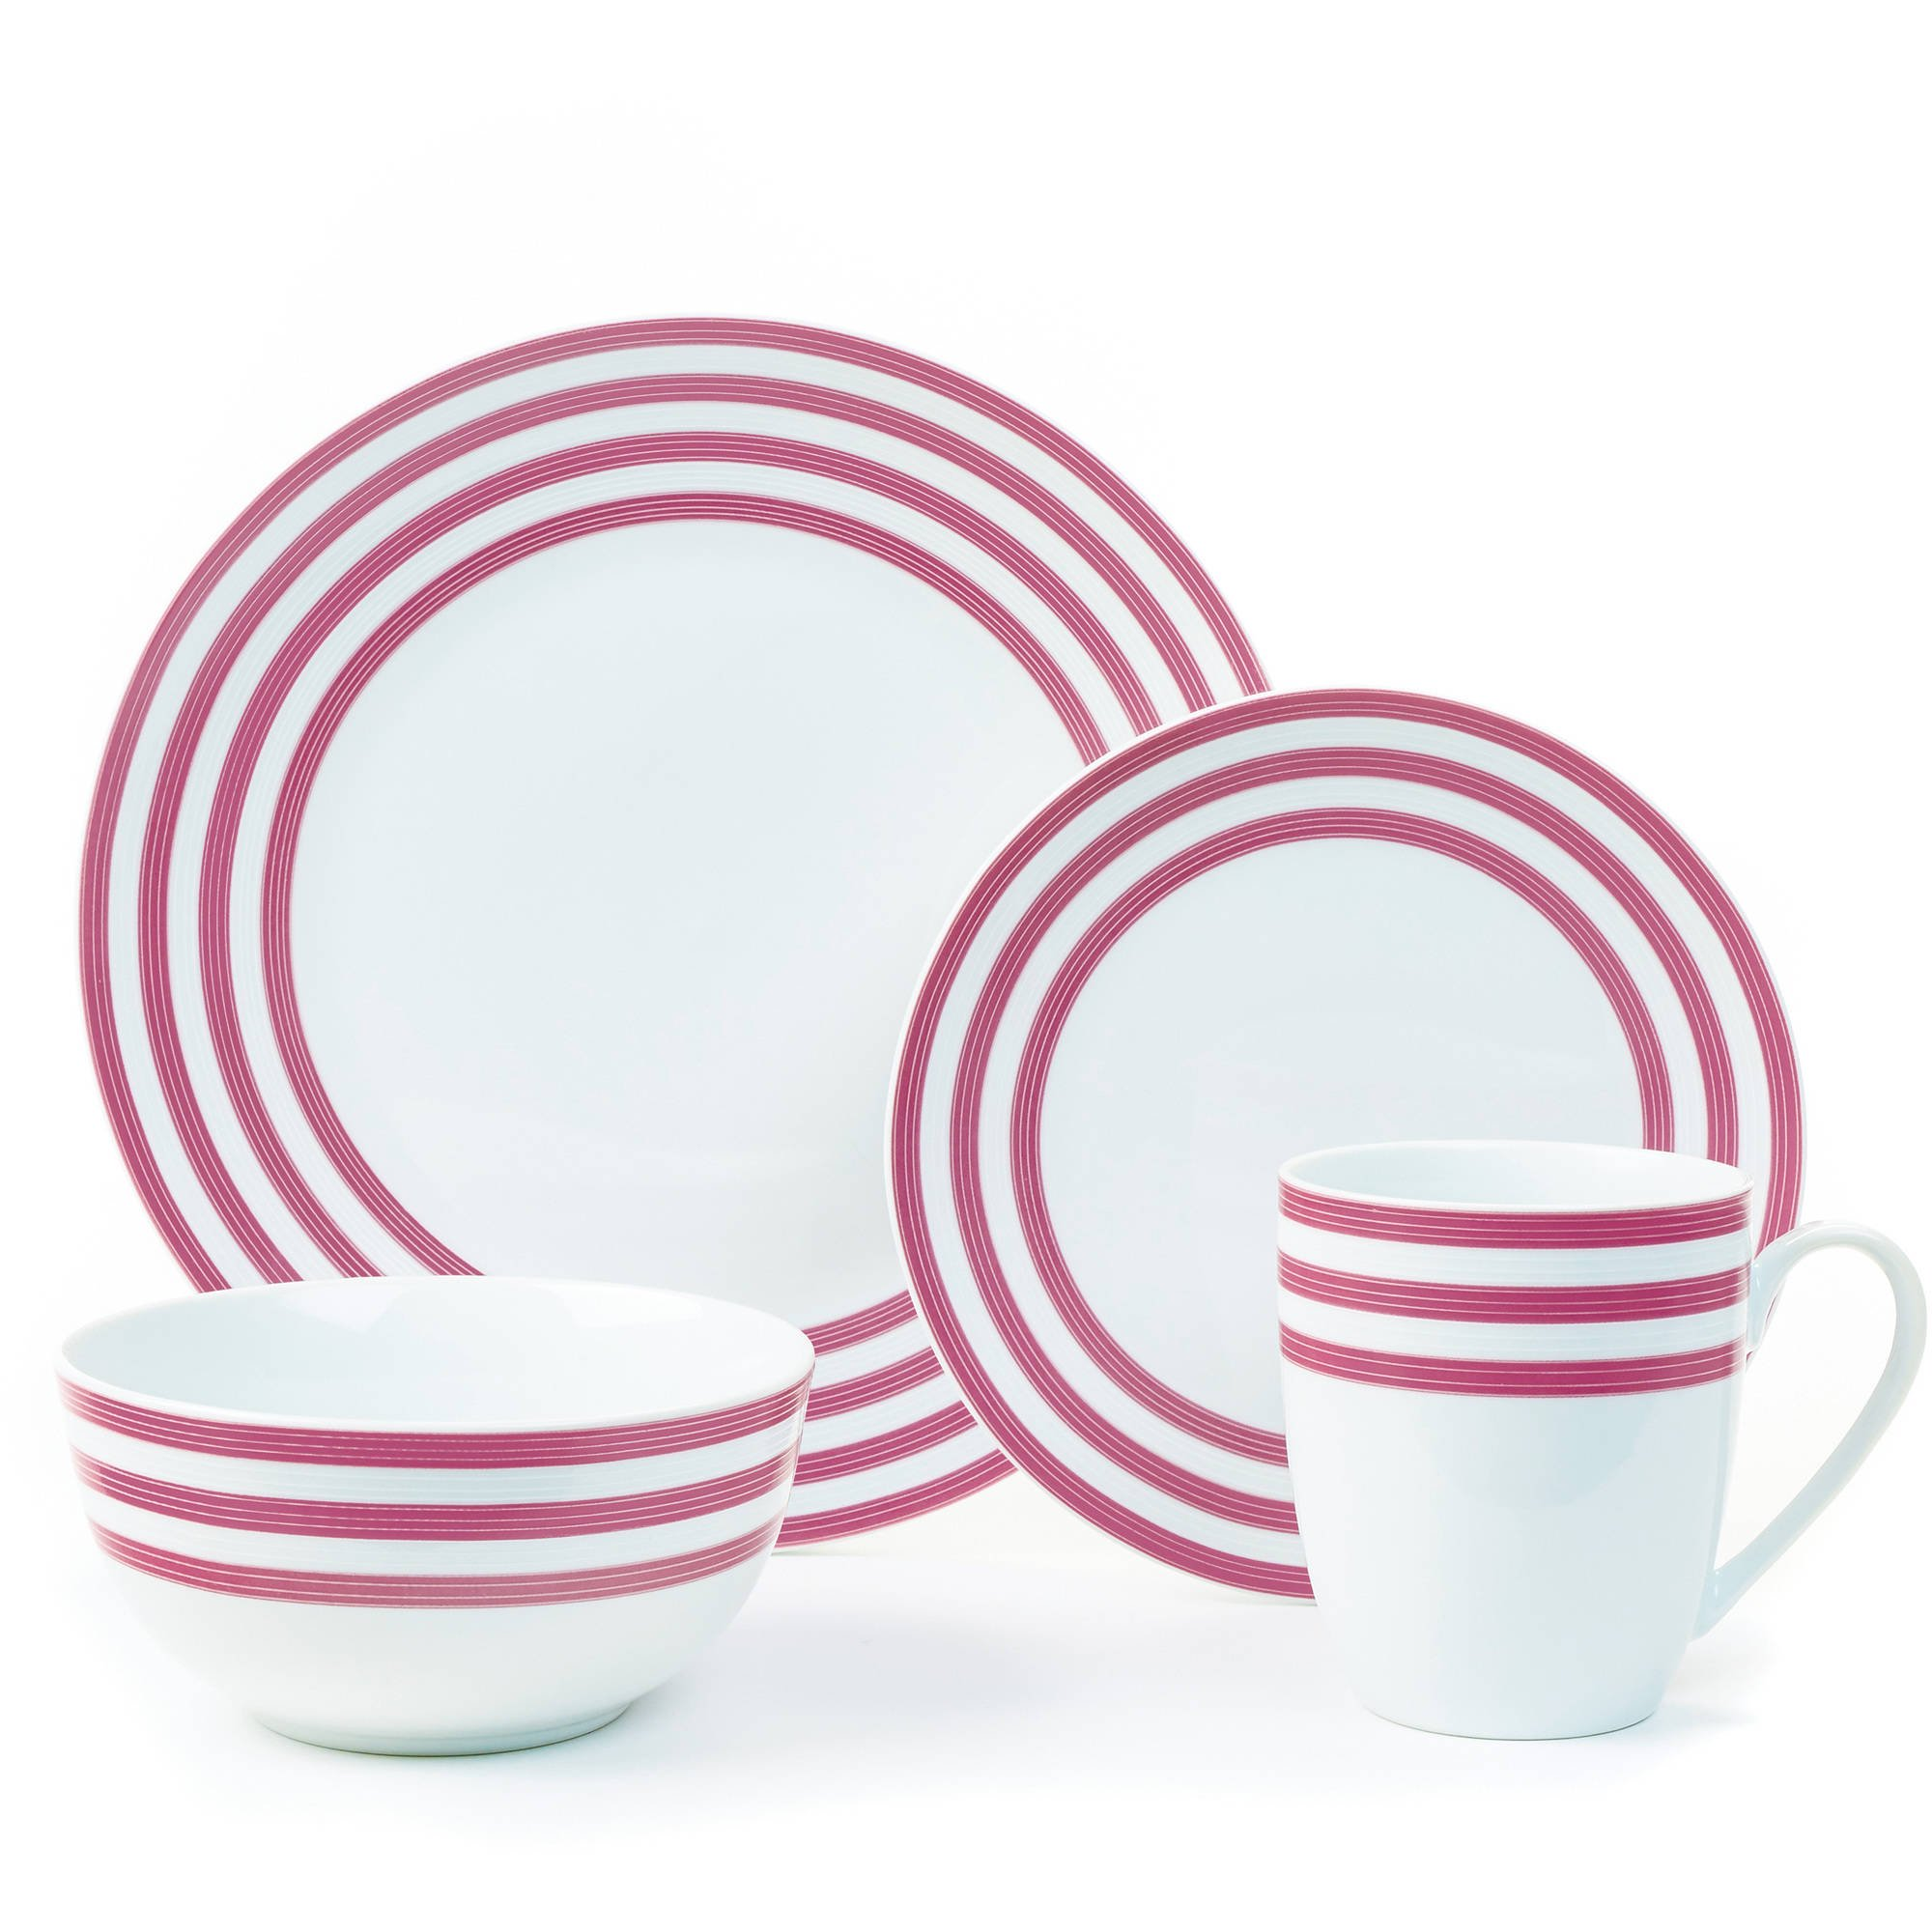 Cruise Multi-Striped Collection 16-Piece Porcelain Dinnerware Set Exclusive  sc 1 st  Walmart & Dinnerware Sets - Walmart.com